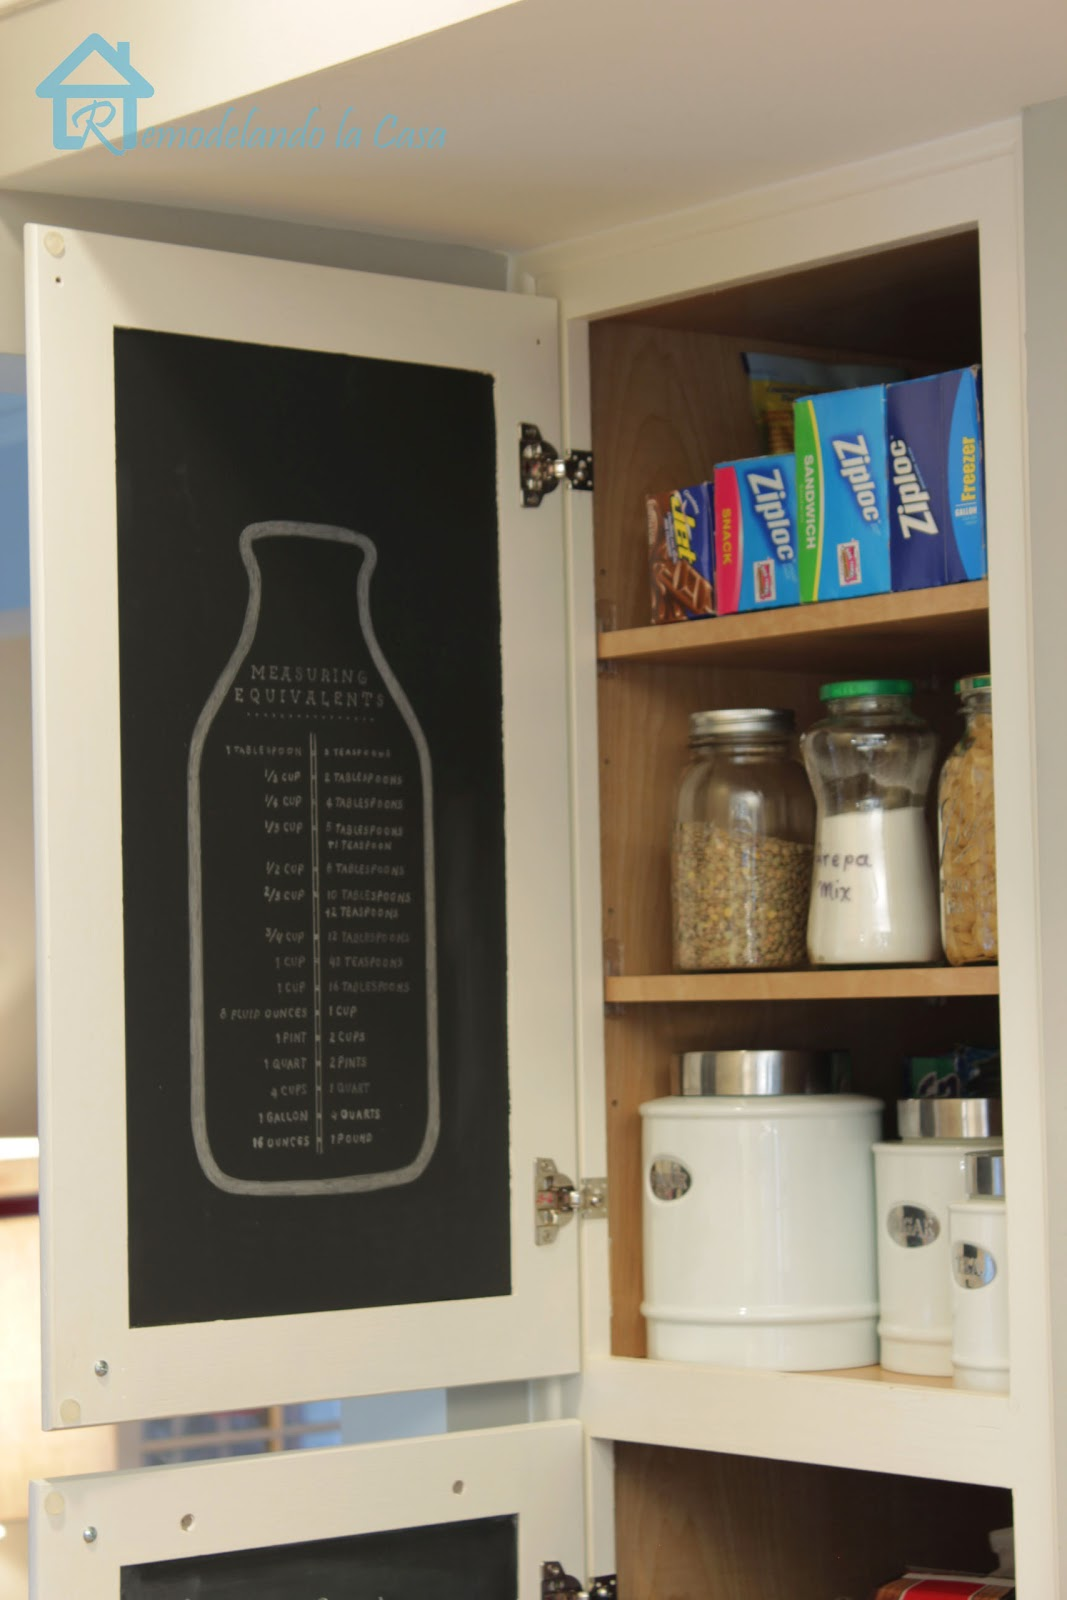 How To Build A Kitchen Pantry Cabinet Kitchen Organization - Pull Out Shelves In Pantry